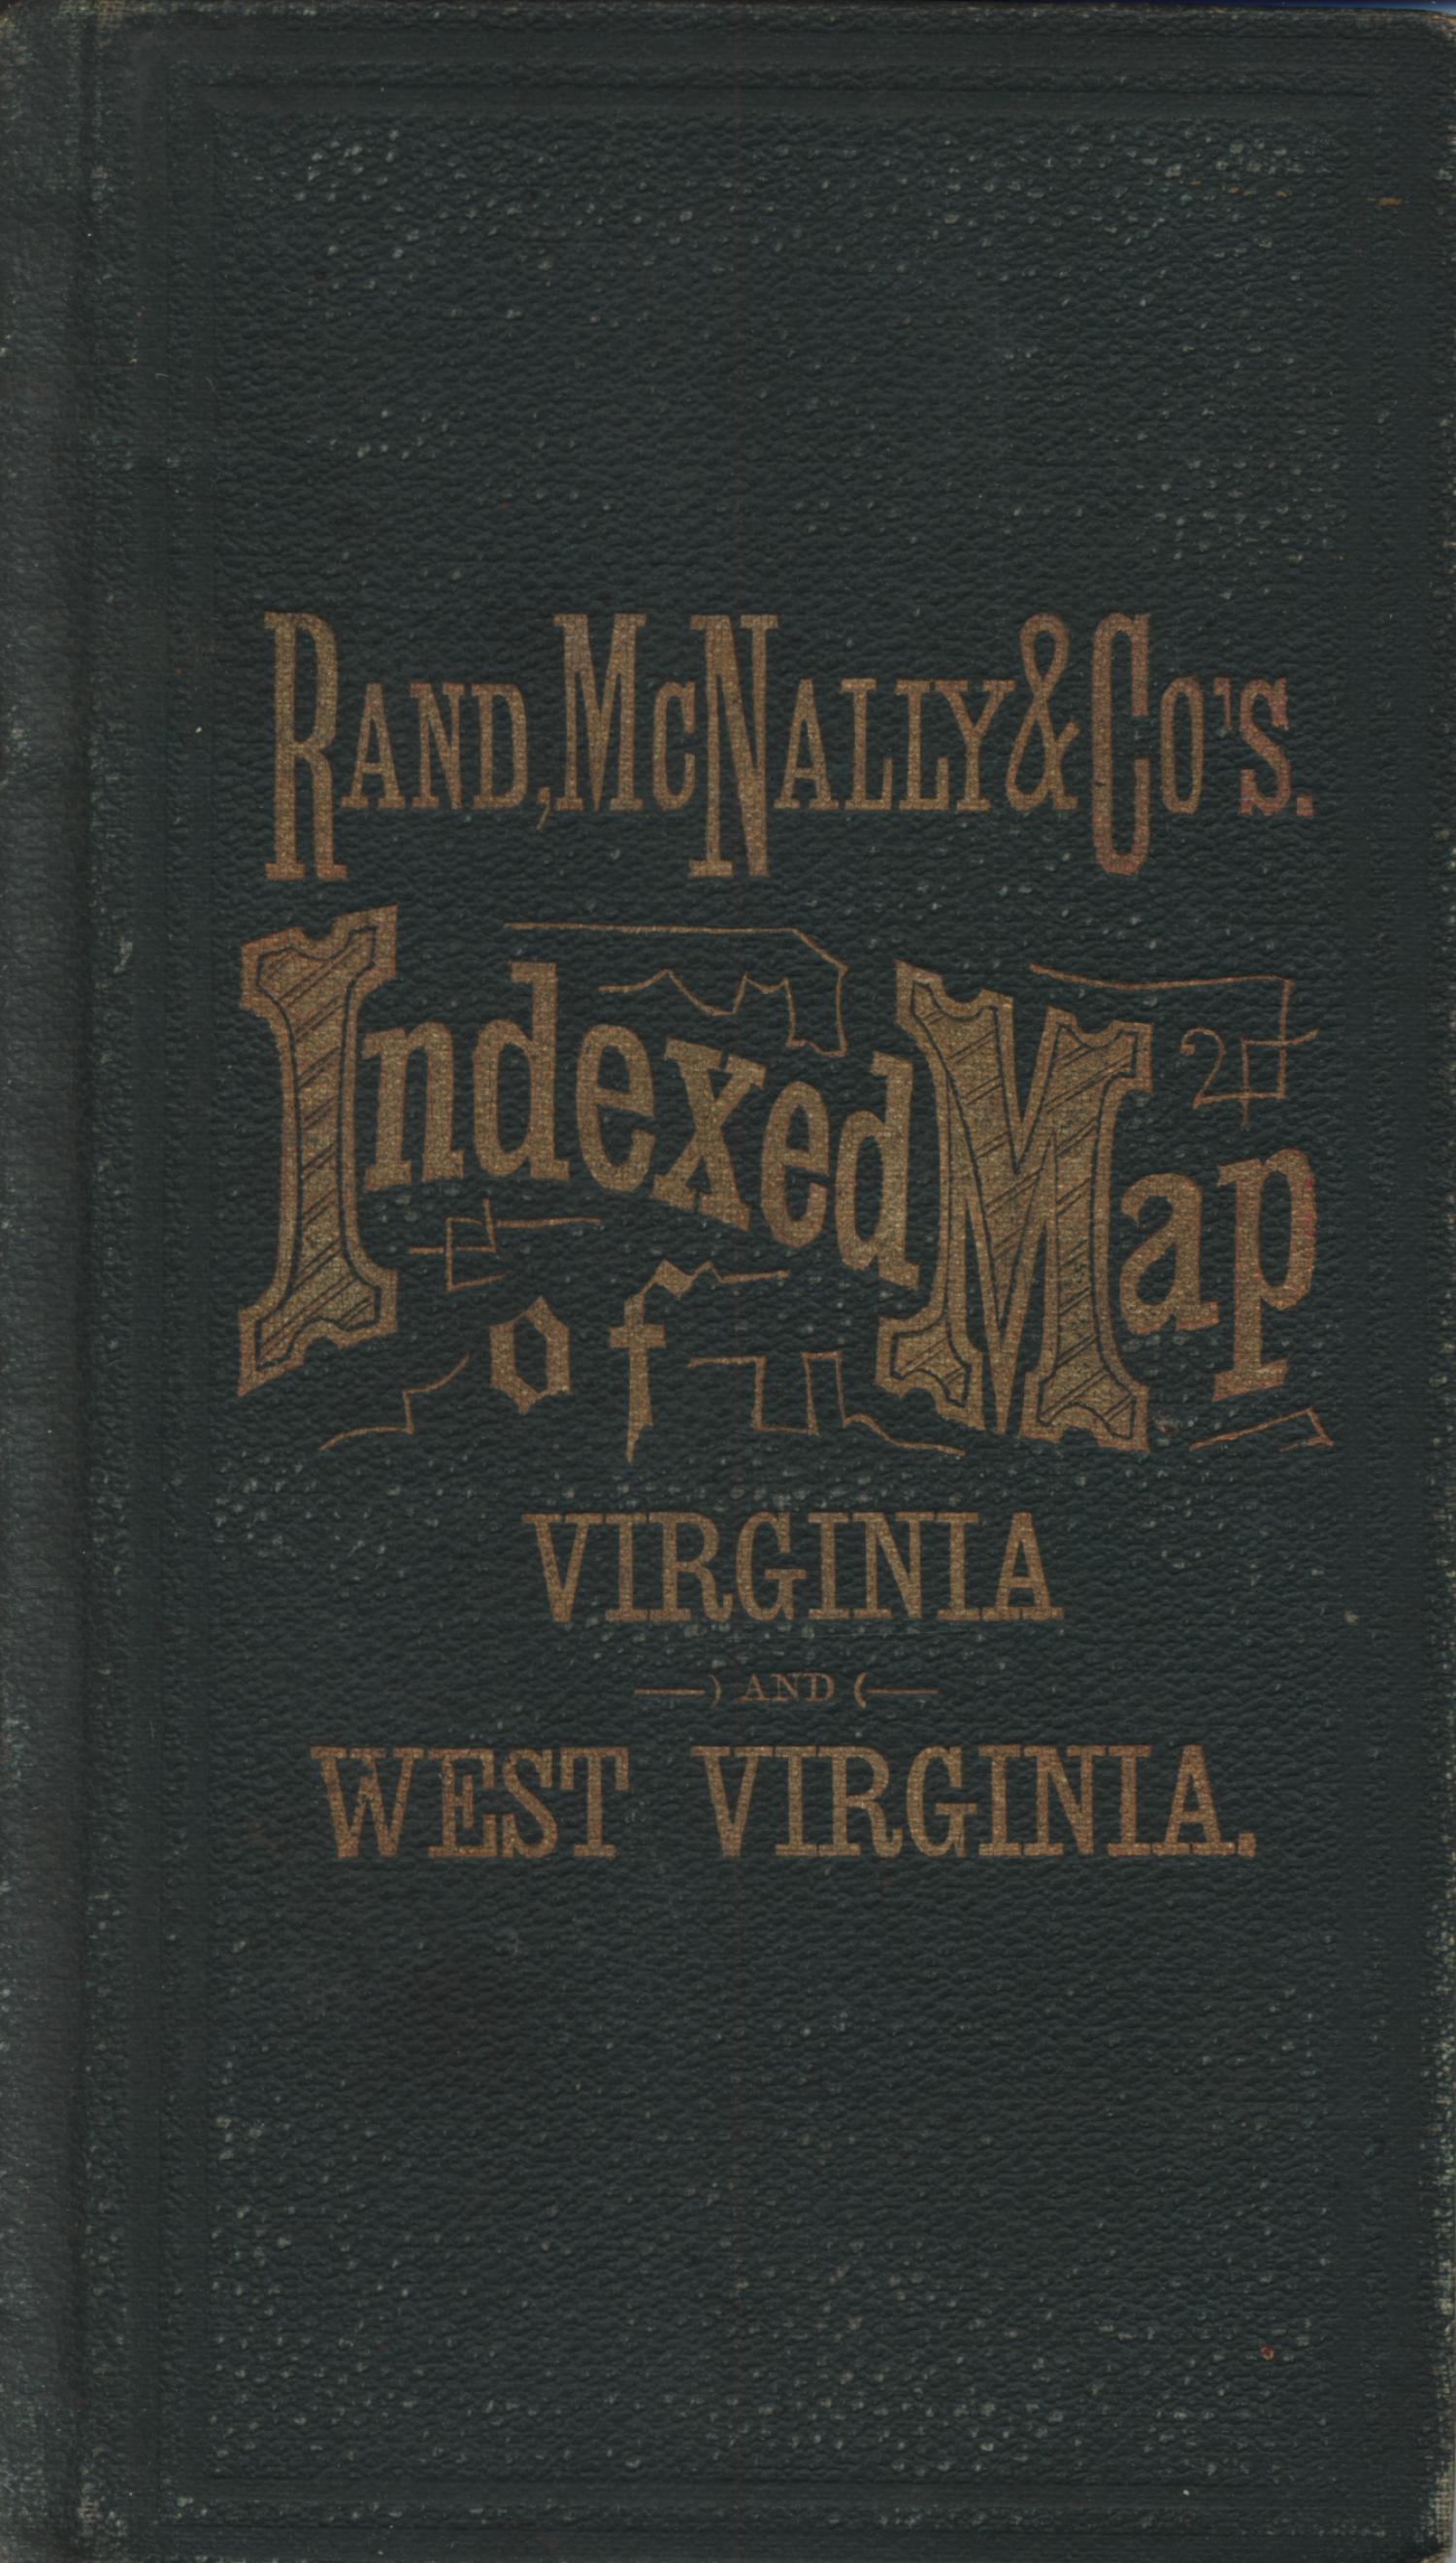 Rand, McNally & Co.s Virginia and West Virginia [Accompanying Text]., Explanation and supporting information related to map that shows shows late nineteenth century Virginia and West Virginia counties, railroads, canals, swamps, cities, towns, and notable physical features.,